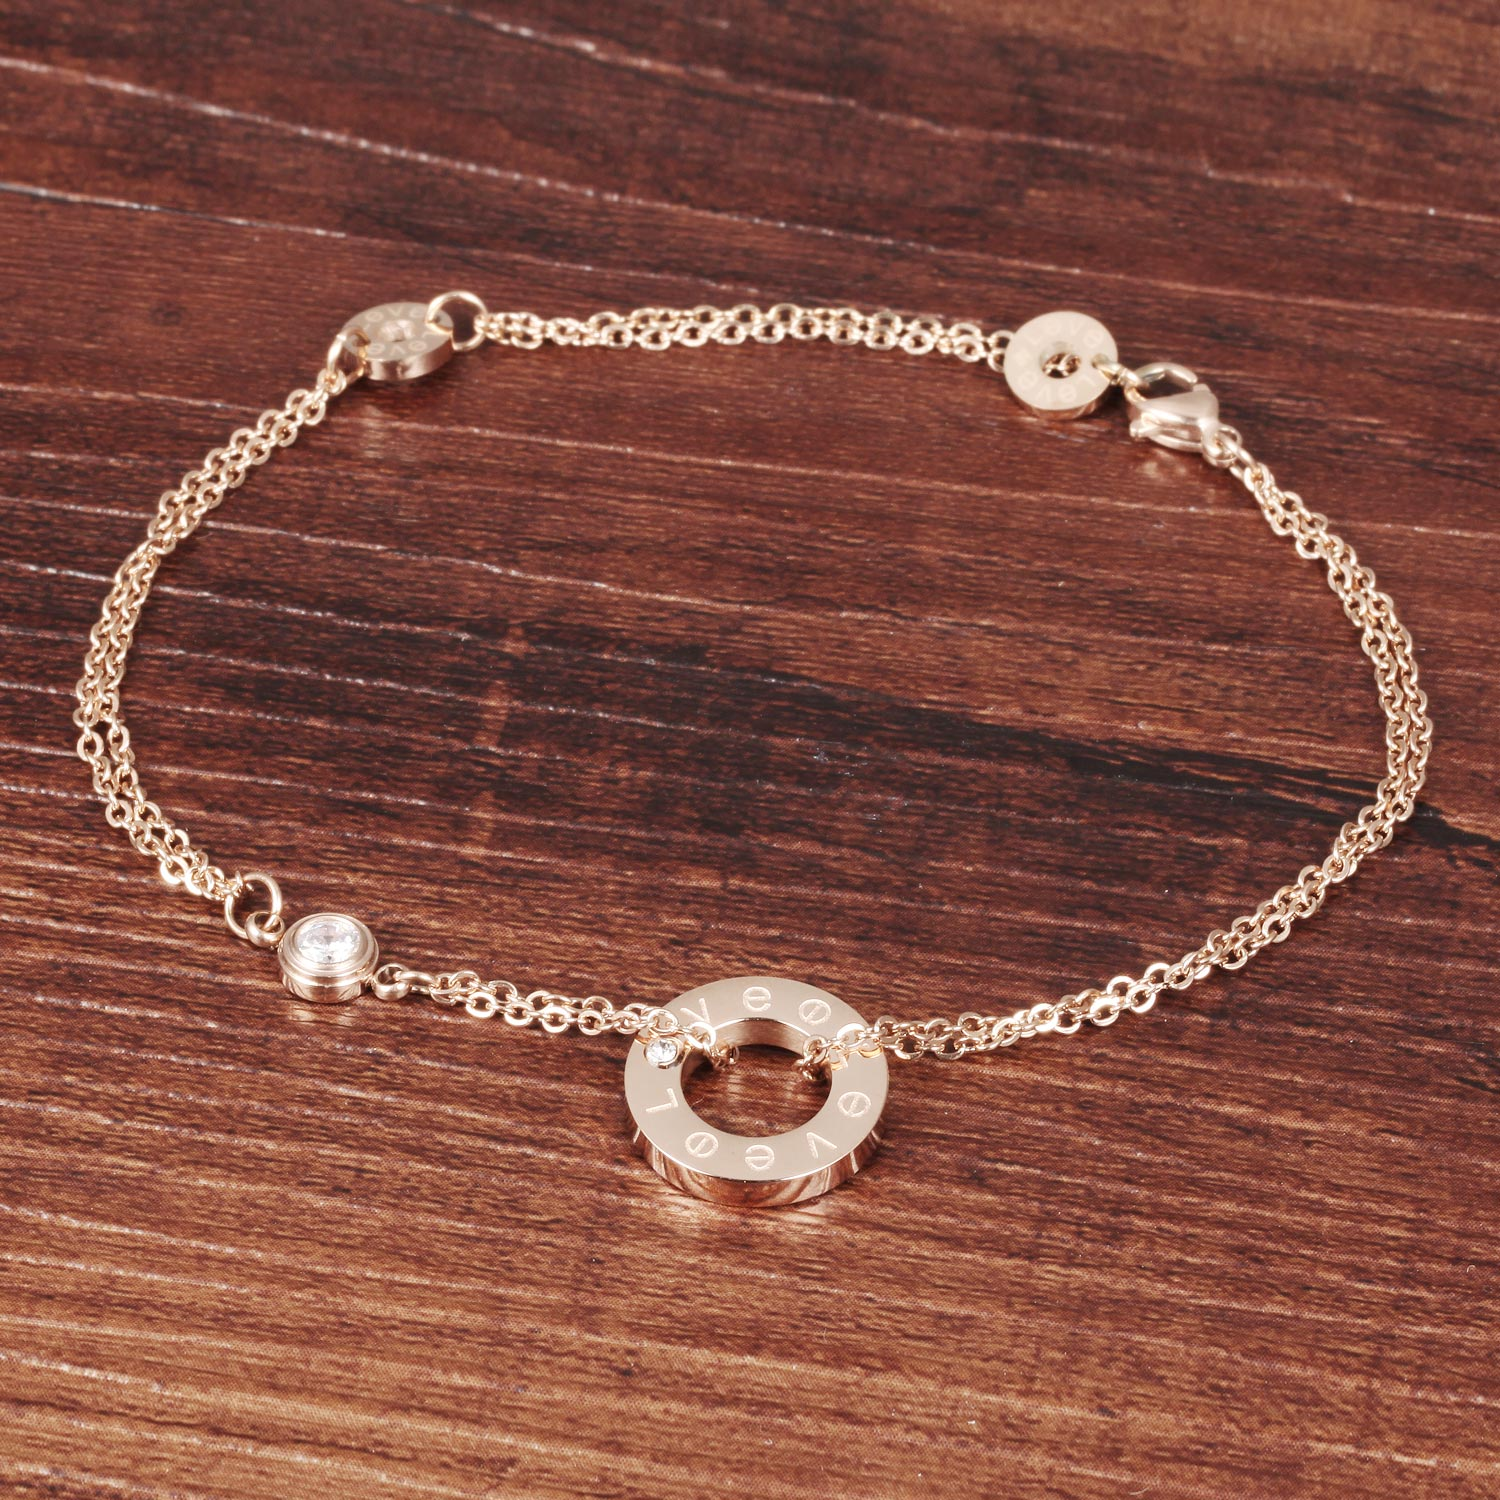 color cubic zirconia rose com casual stainless best under sporty bracelet gold dhgate anklets product jewelry women anklet steel aaa woman ankle